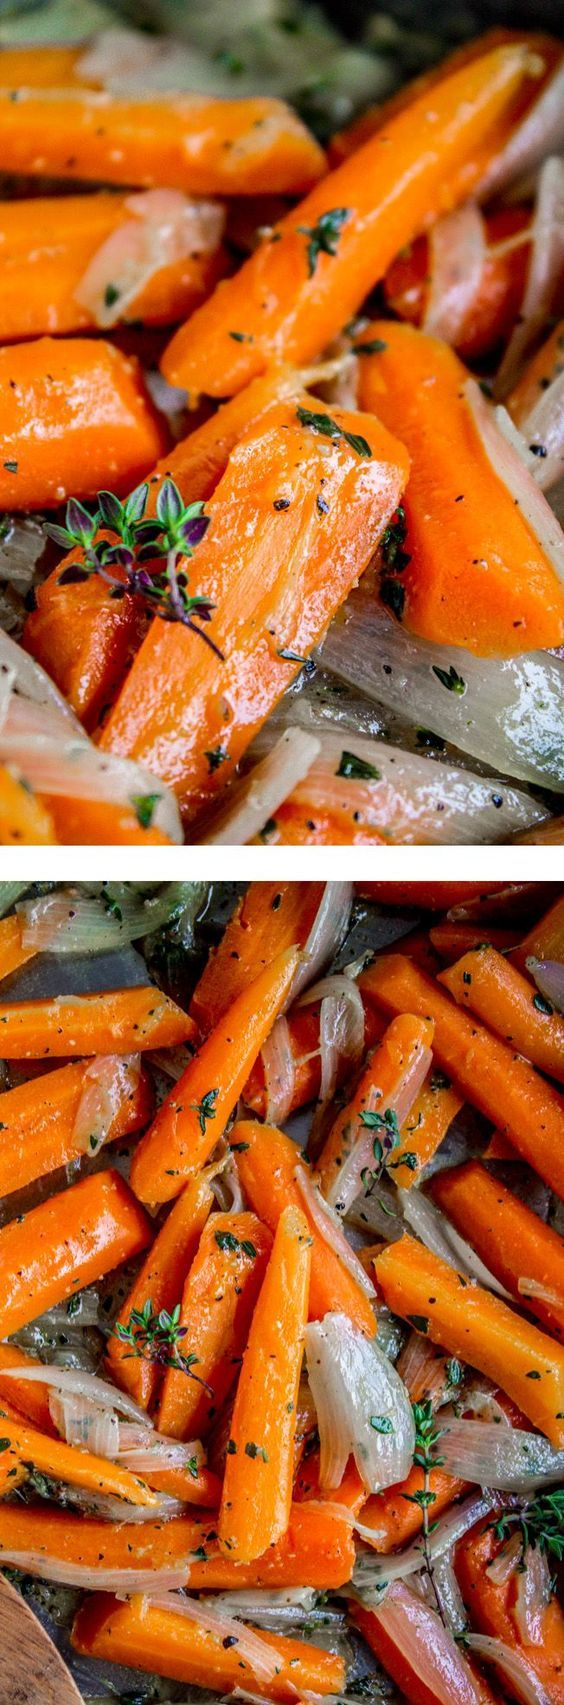 Famous recipe for the BEST CARROTS! Sautéing them with shallots and fresh thyme makes them next-level. Perfect for Easter!